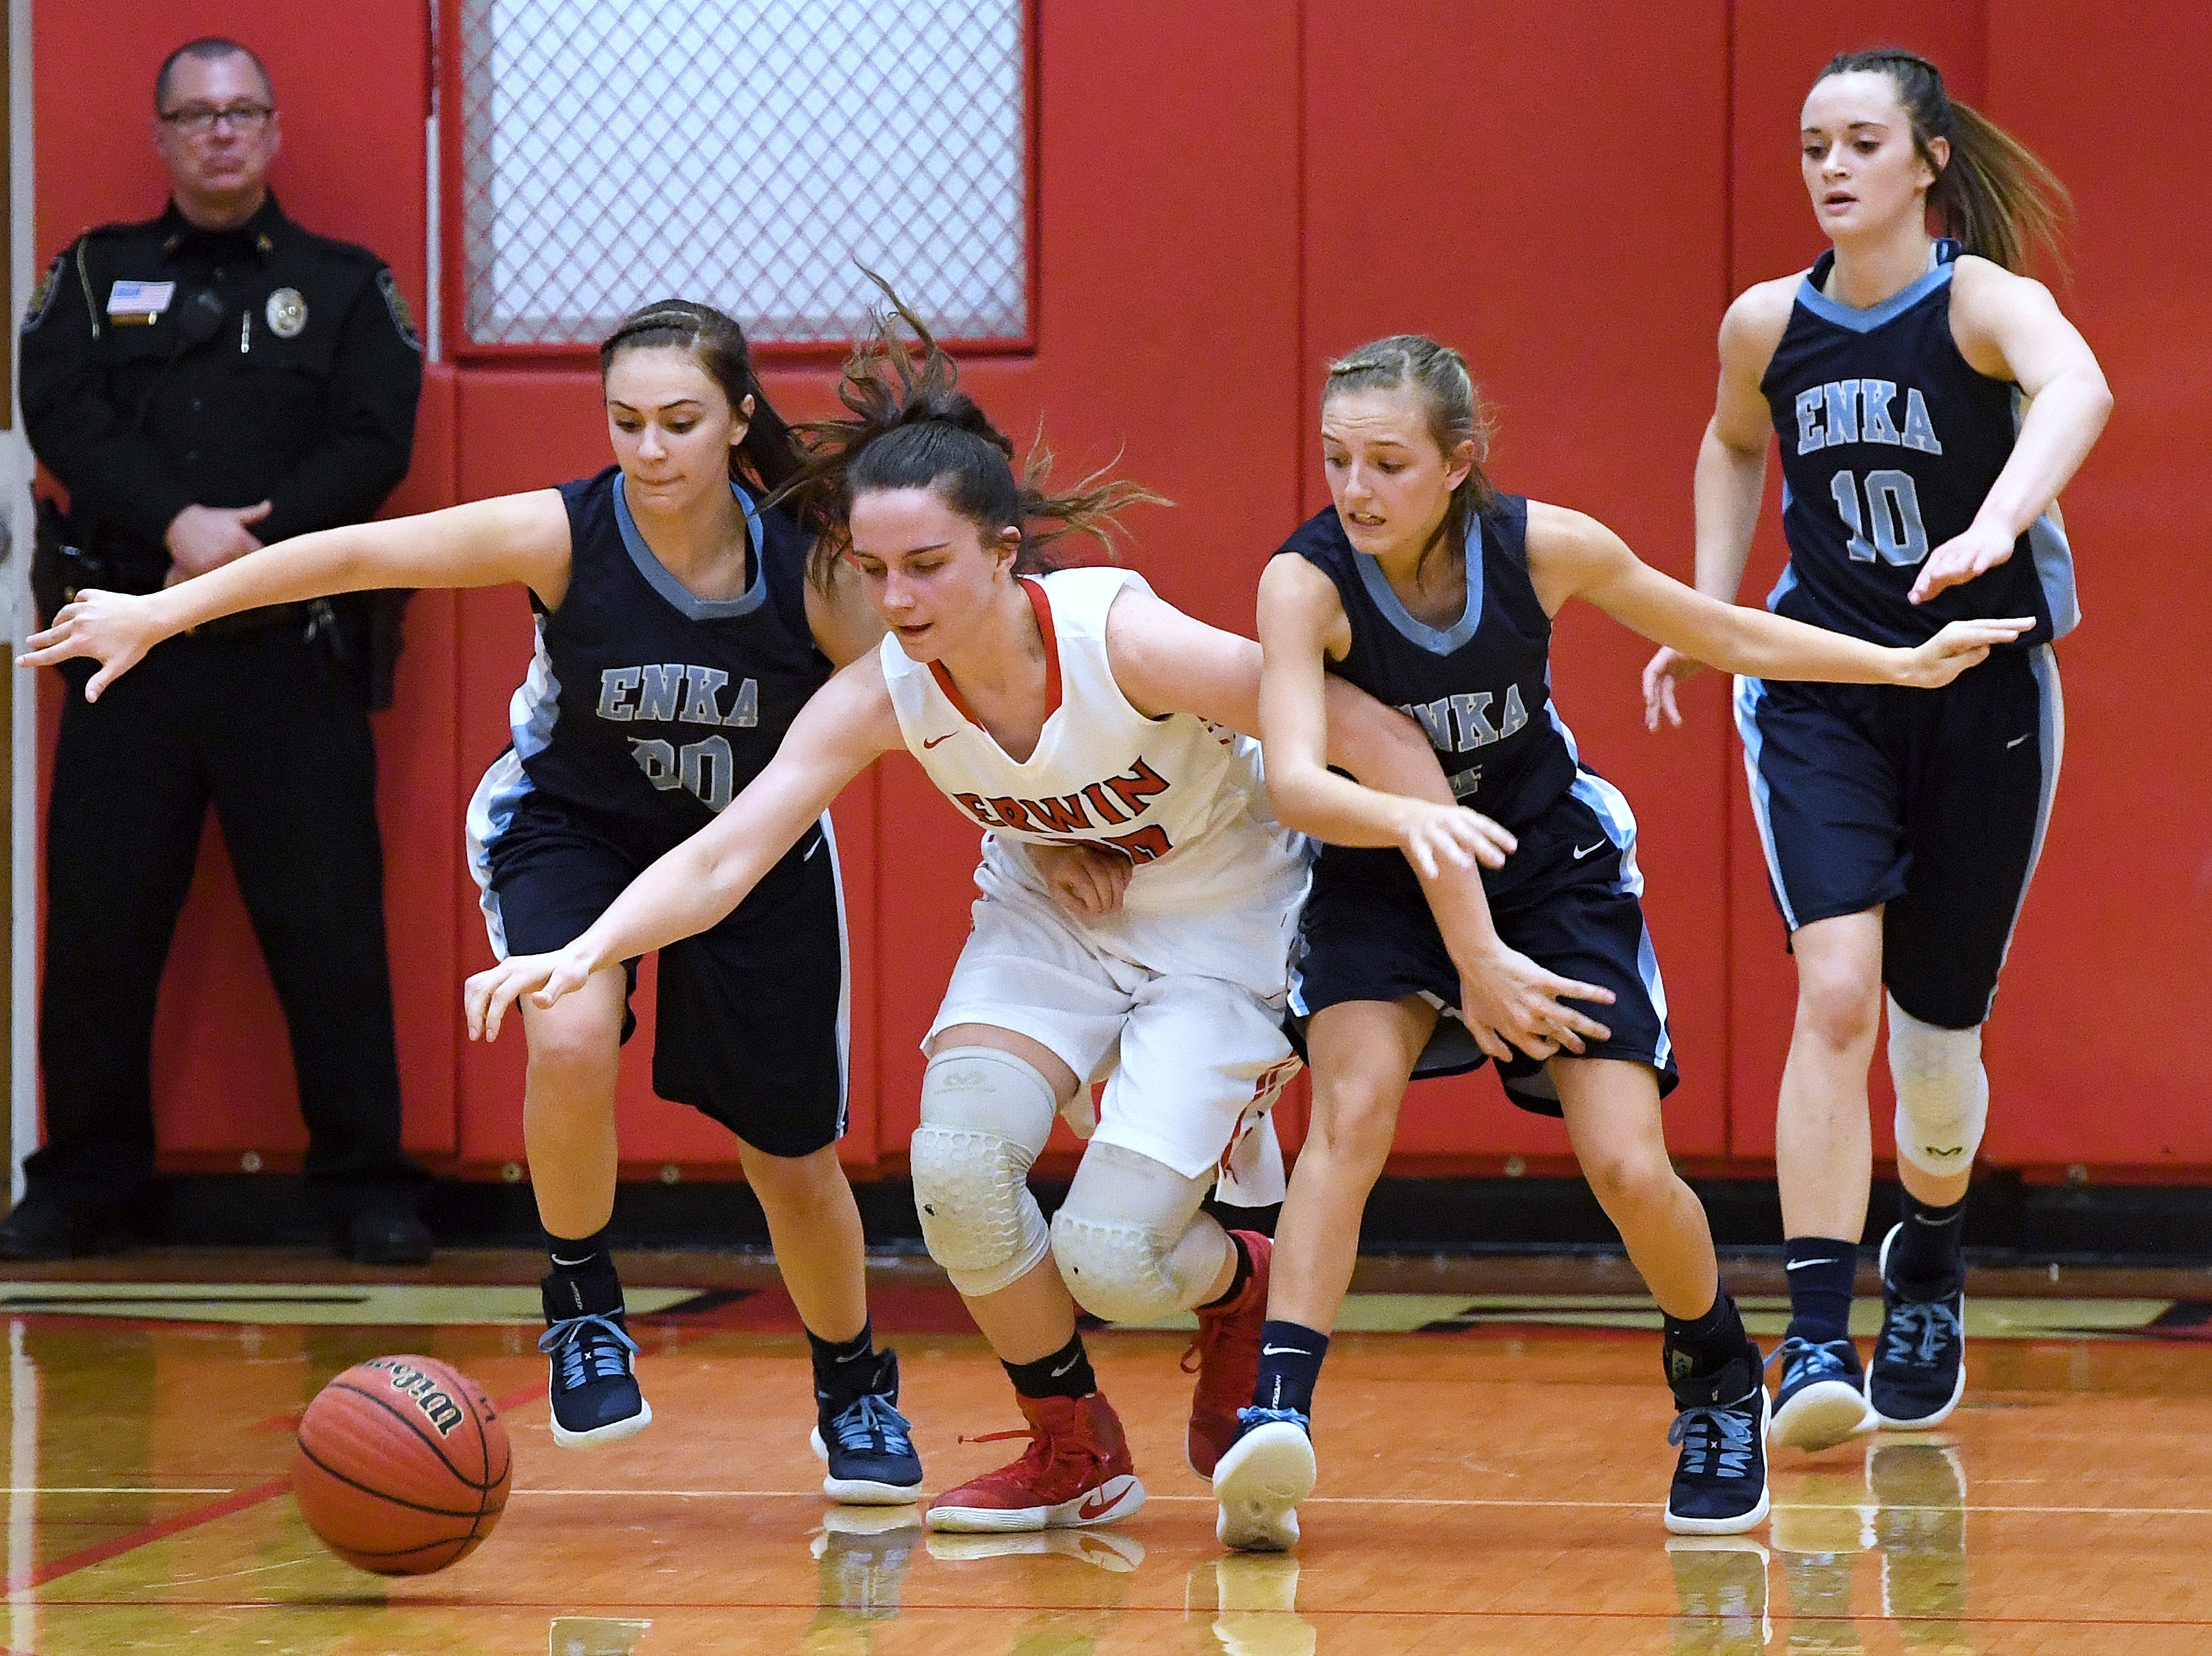 Erwin's Kaitlyn Messer pushes through Enka's Mae Cordiale, left, and Peyton Cathey as they battle for the ball during their game at Erwin High School on Feb. 8, 2019. The Lady Warriors defeated the Sugar Jets 68-46 to claim the WMAC regular season title.